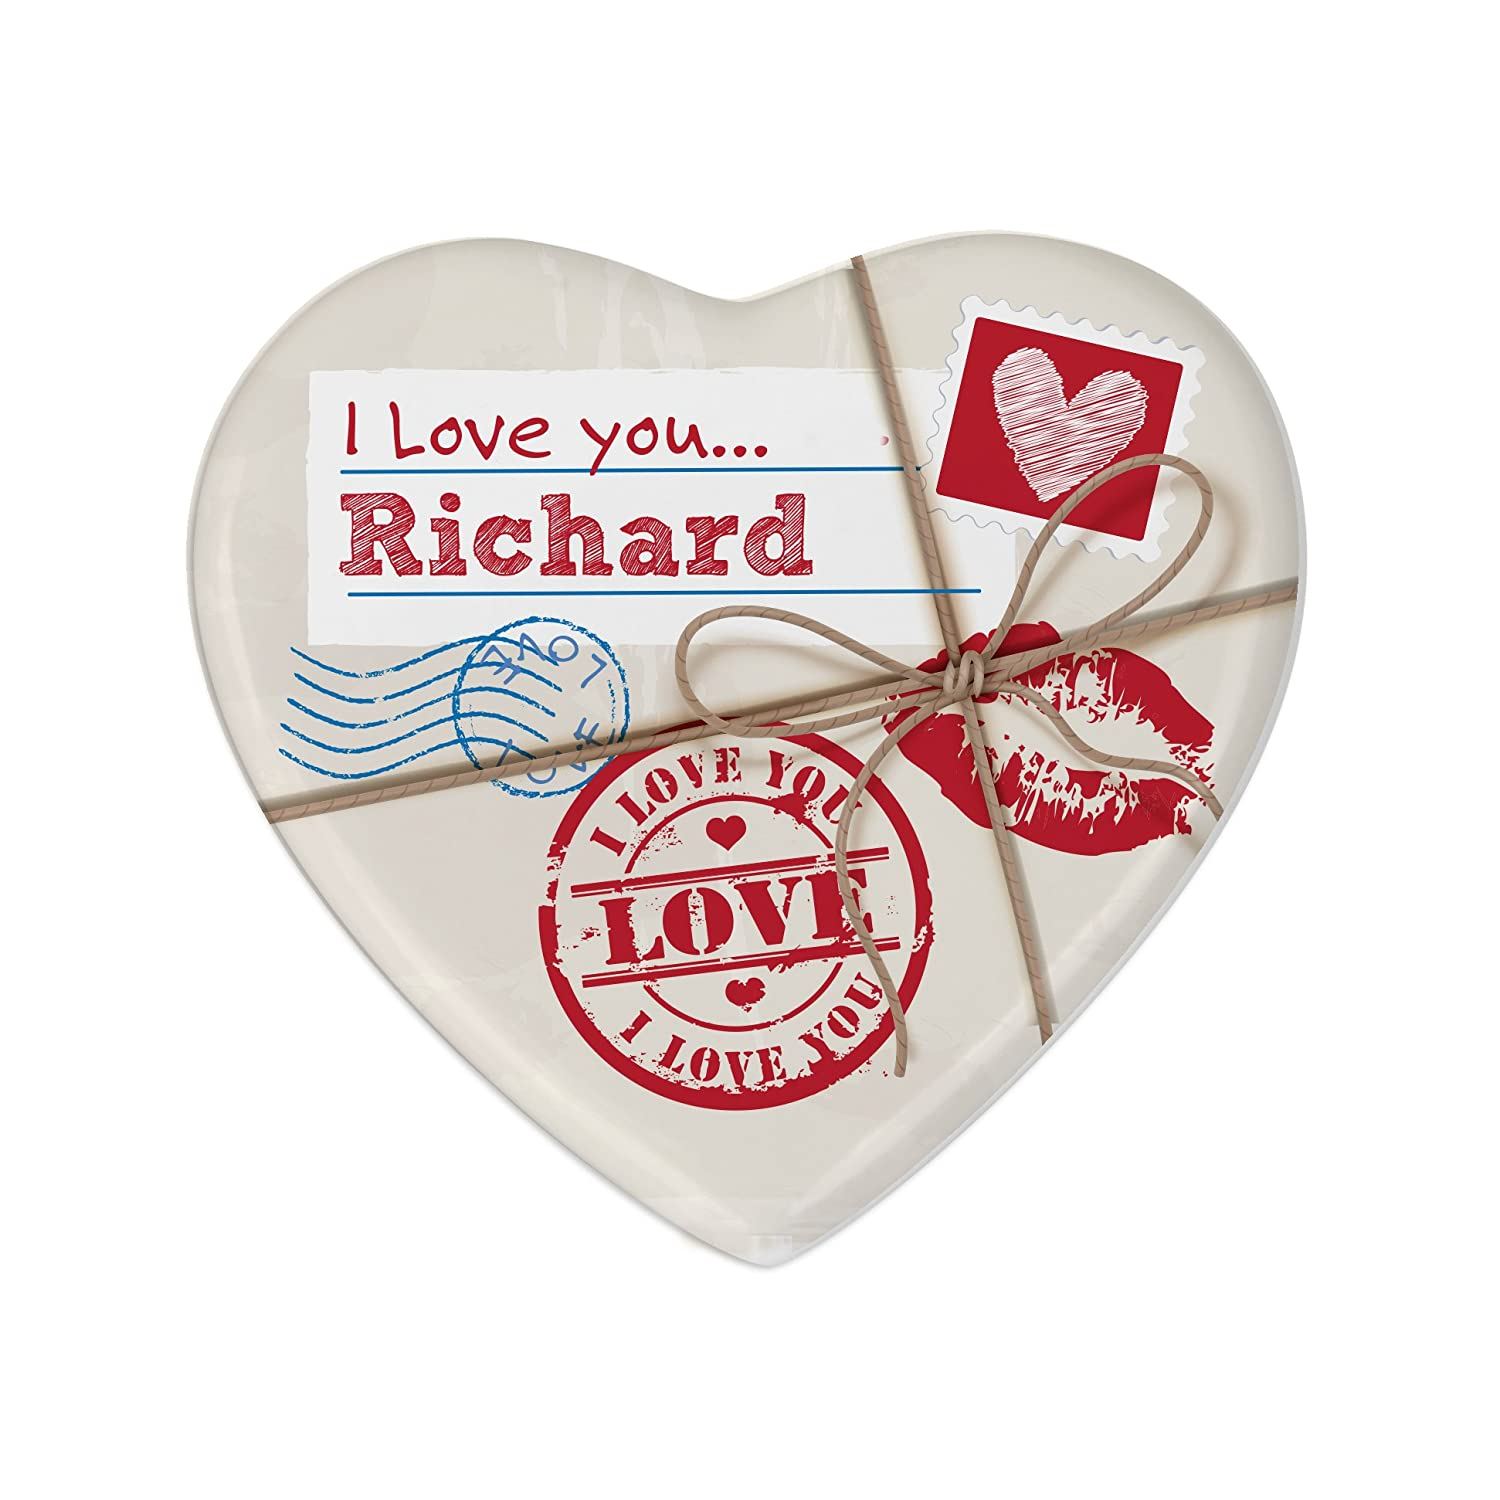 EXCLUSIVE Love Letter Ceramic Heart Coaster - Free